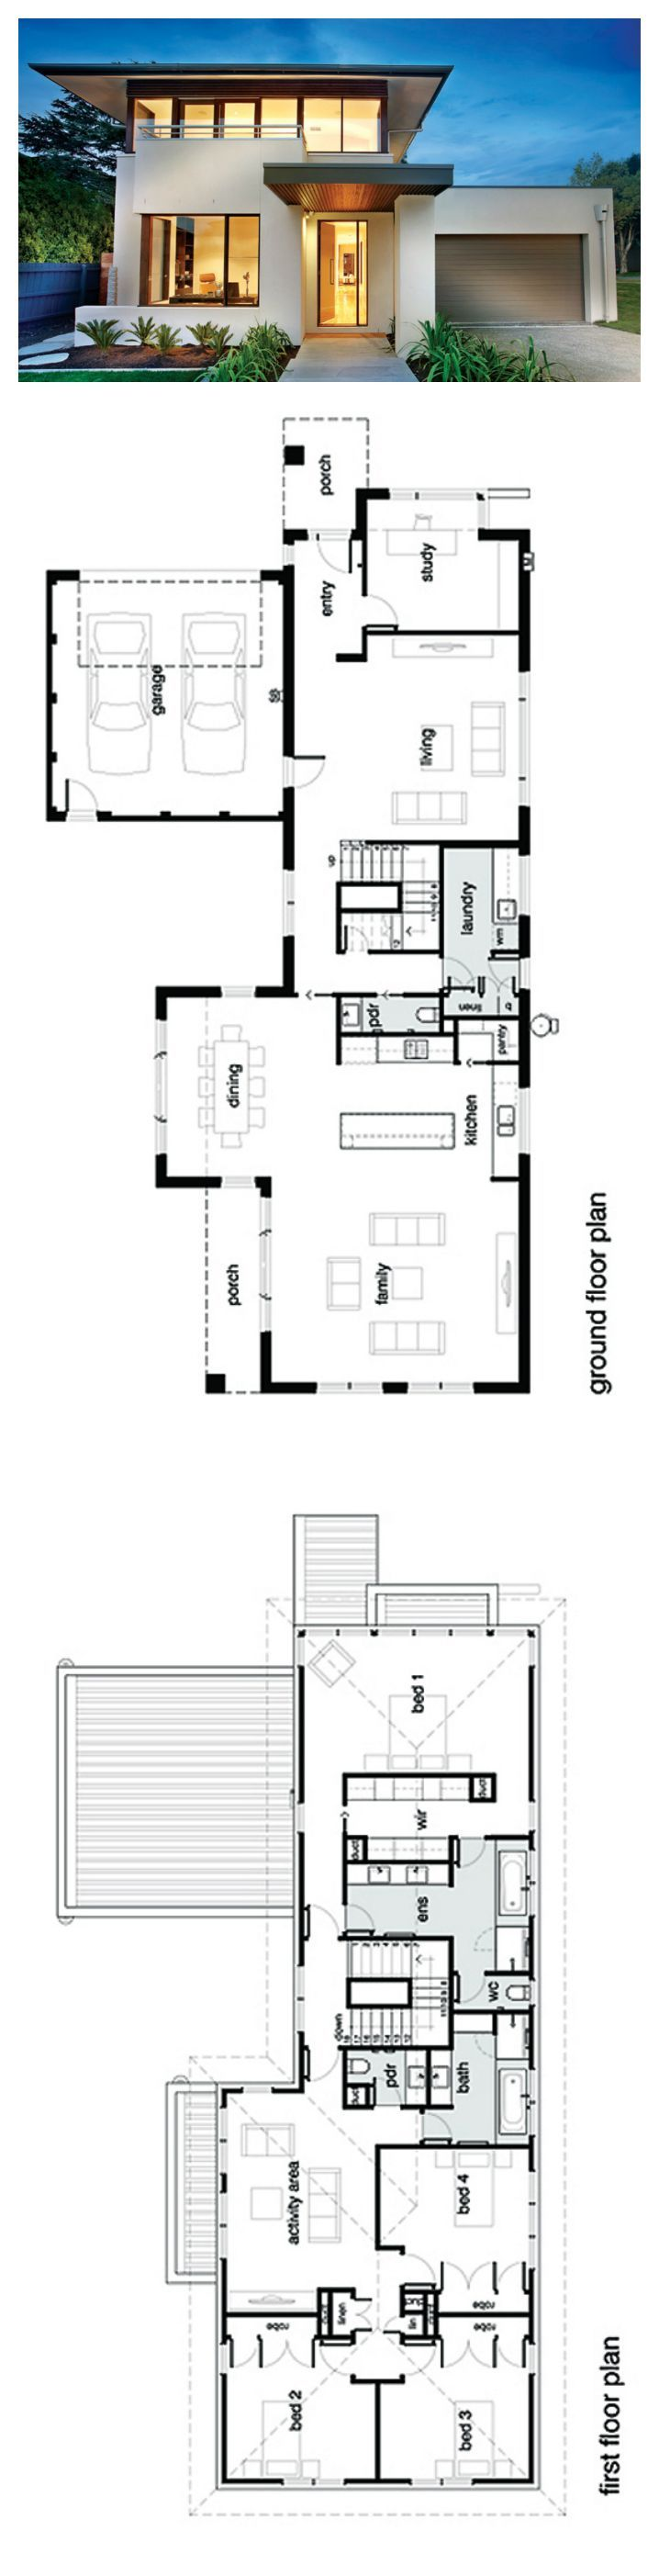 Best 25 modern house plans ideas on pinterest modern for Contemporary house blueprints